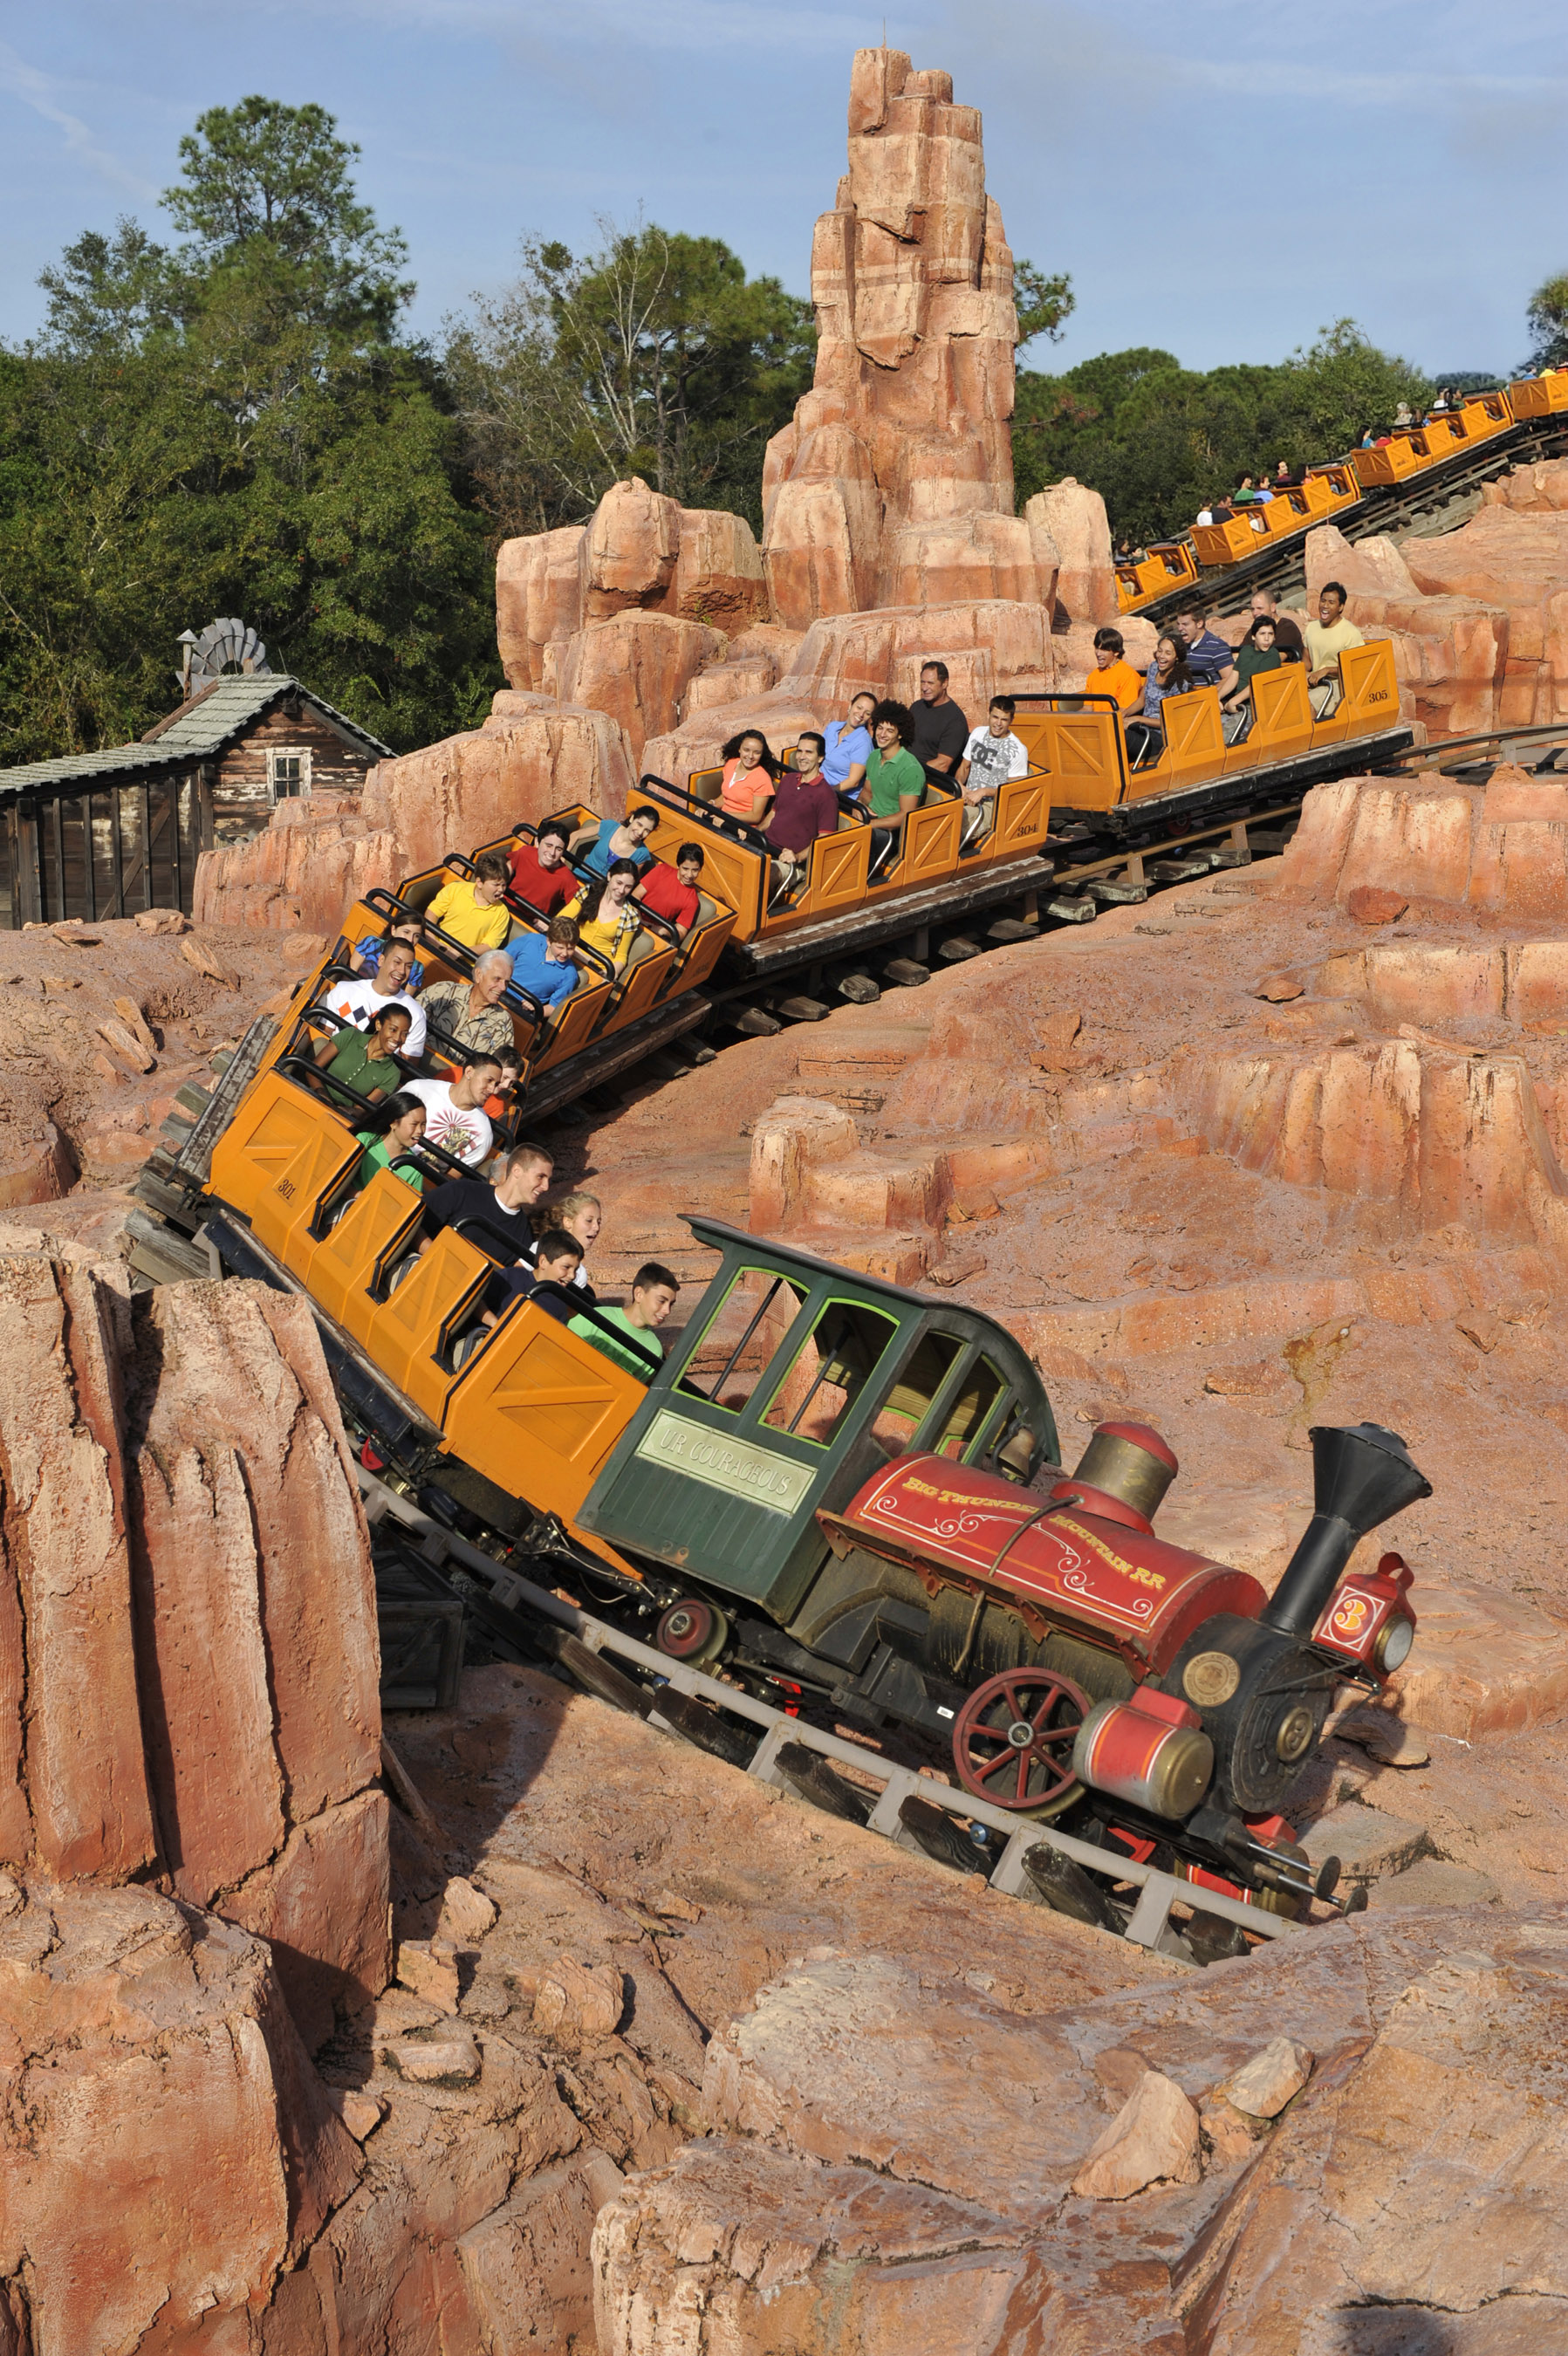 Big Thunder Mountain Railroad takes Magic Kingdom guests on a wild ride in a runaway train through an abandoned gold mine in Frontierland. Magic Kingdom is located at Walt Disney World Resort in Lake Buena Vista, Fla. (Garth Vaughan, photographer)